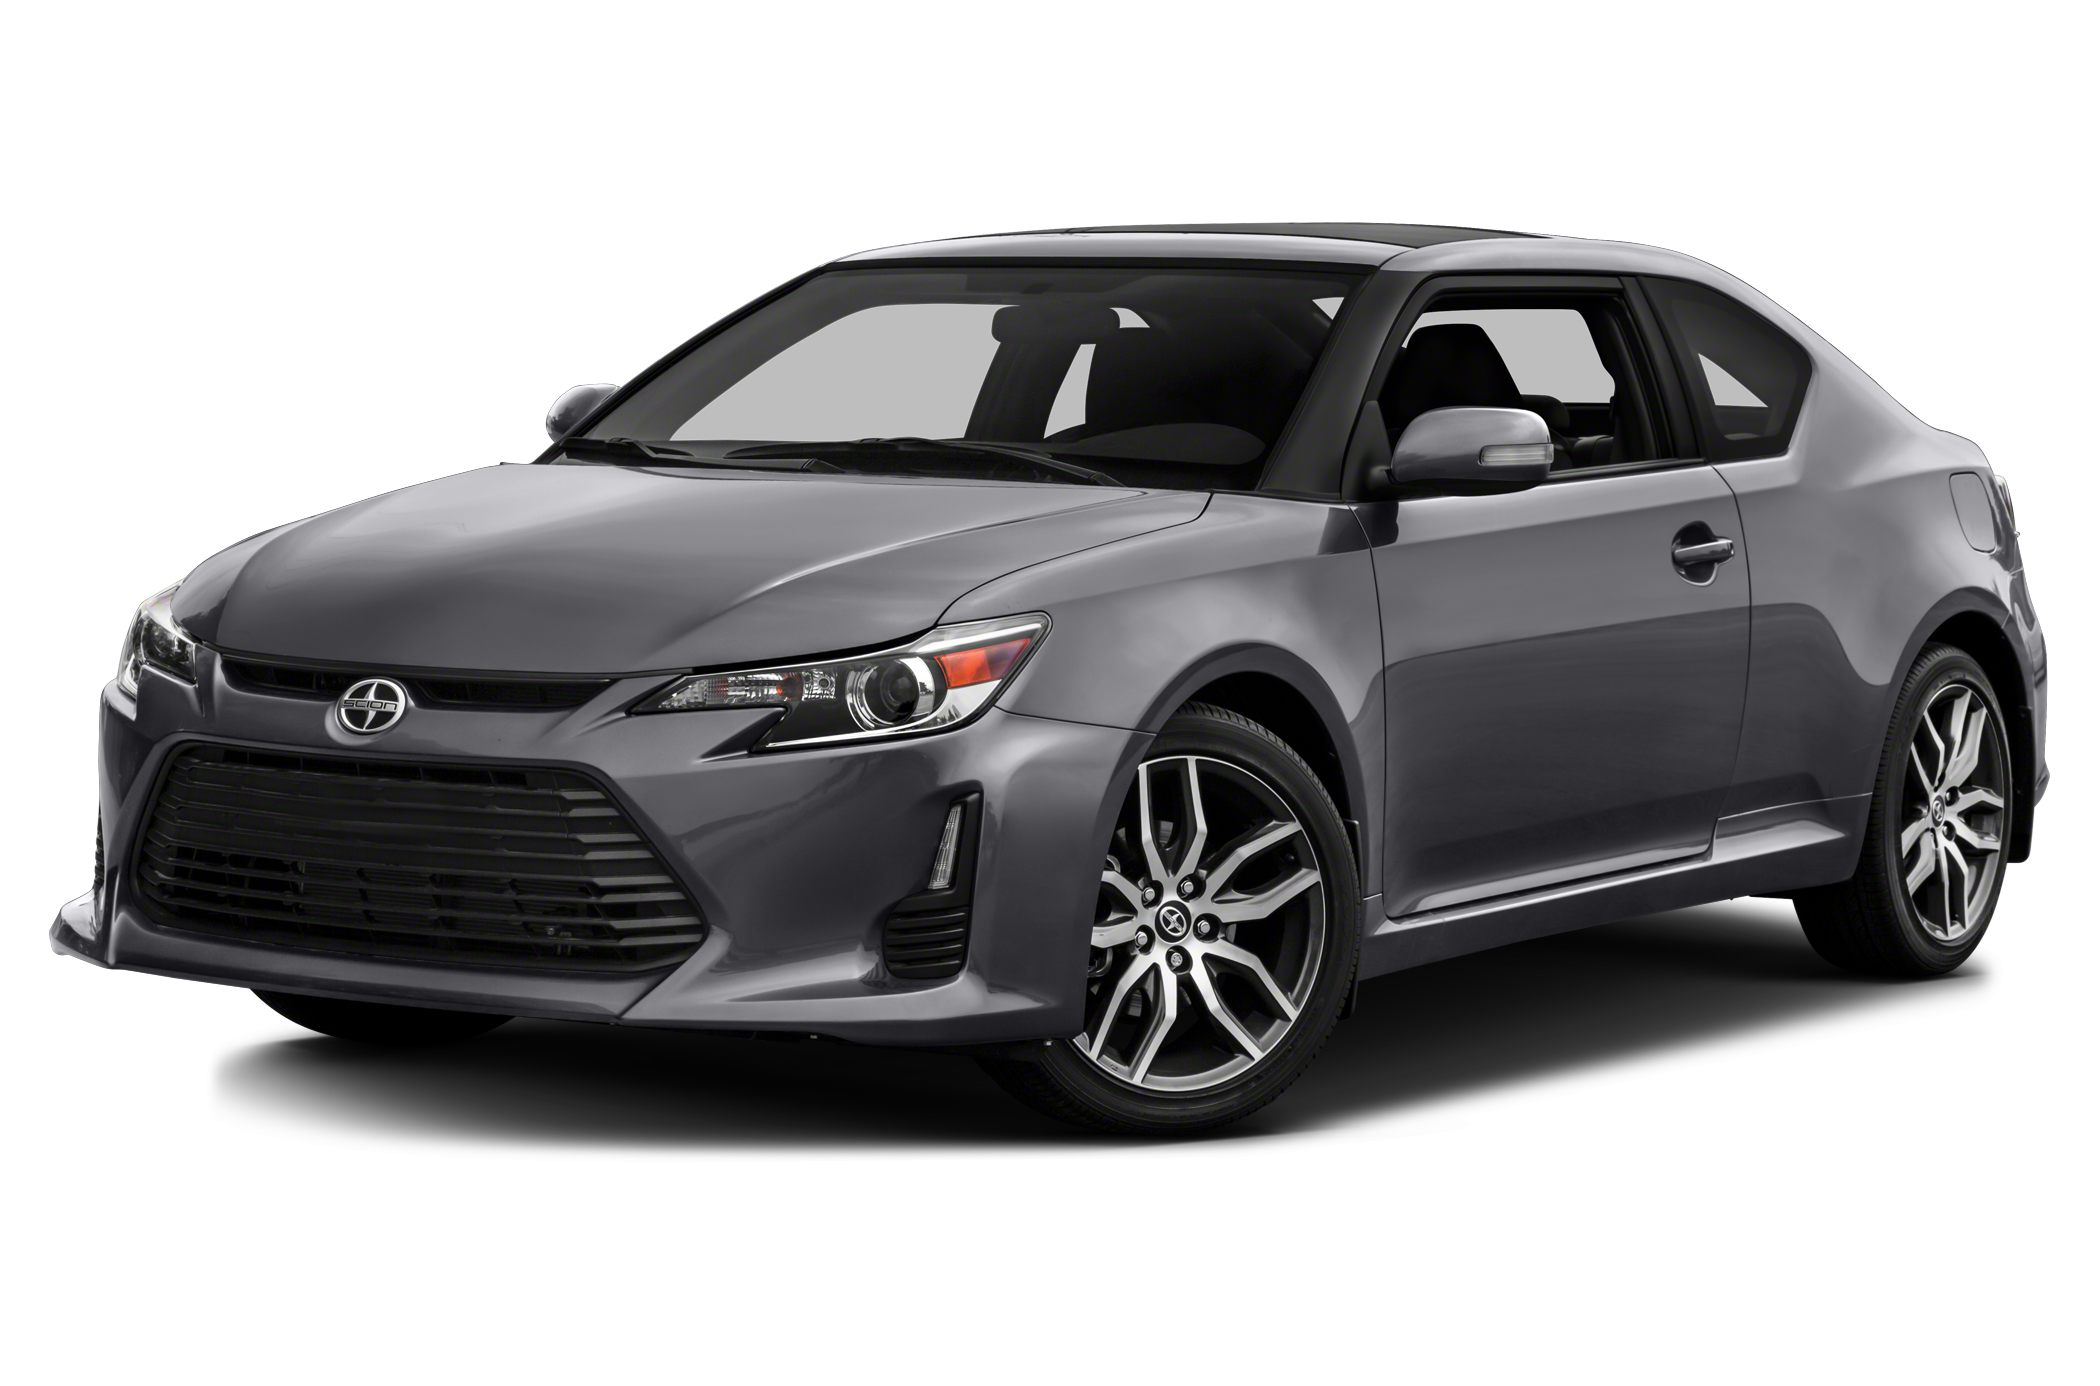 2014 Scion TC Monogram Coupe for sale in Lumberton for $20,488 with 8,225 miles.